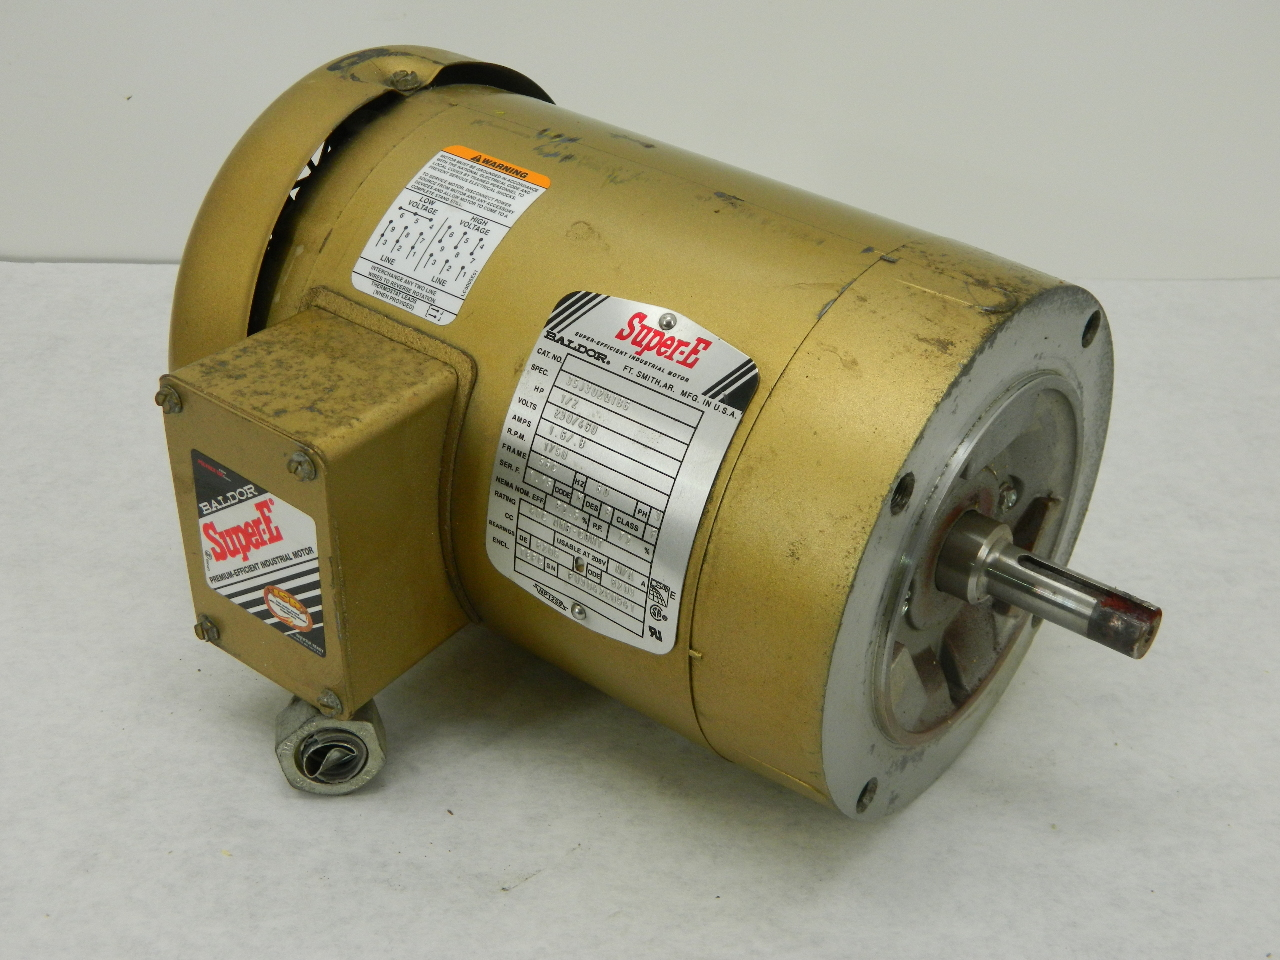 Baldor super e 0 5hp electric motor 230 460 vac 3 phase for Baldor electric motor parts